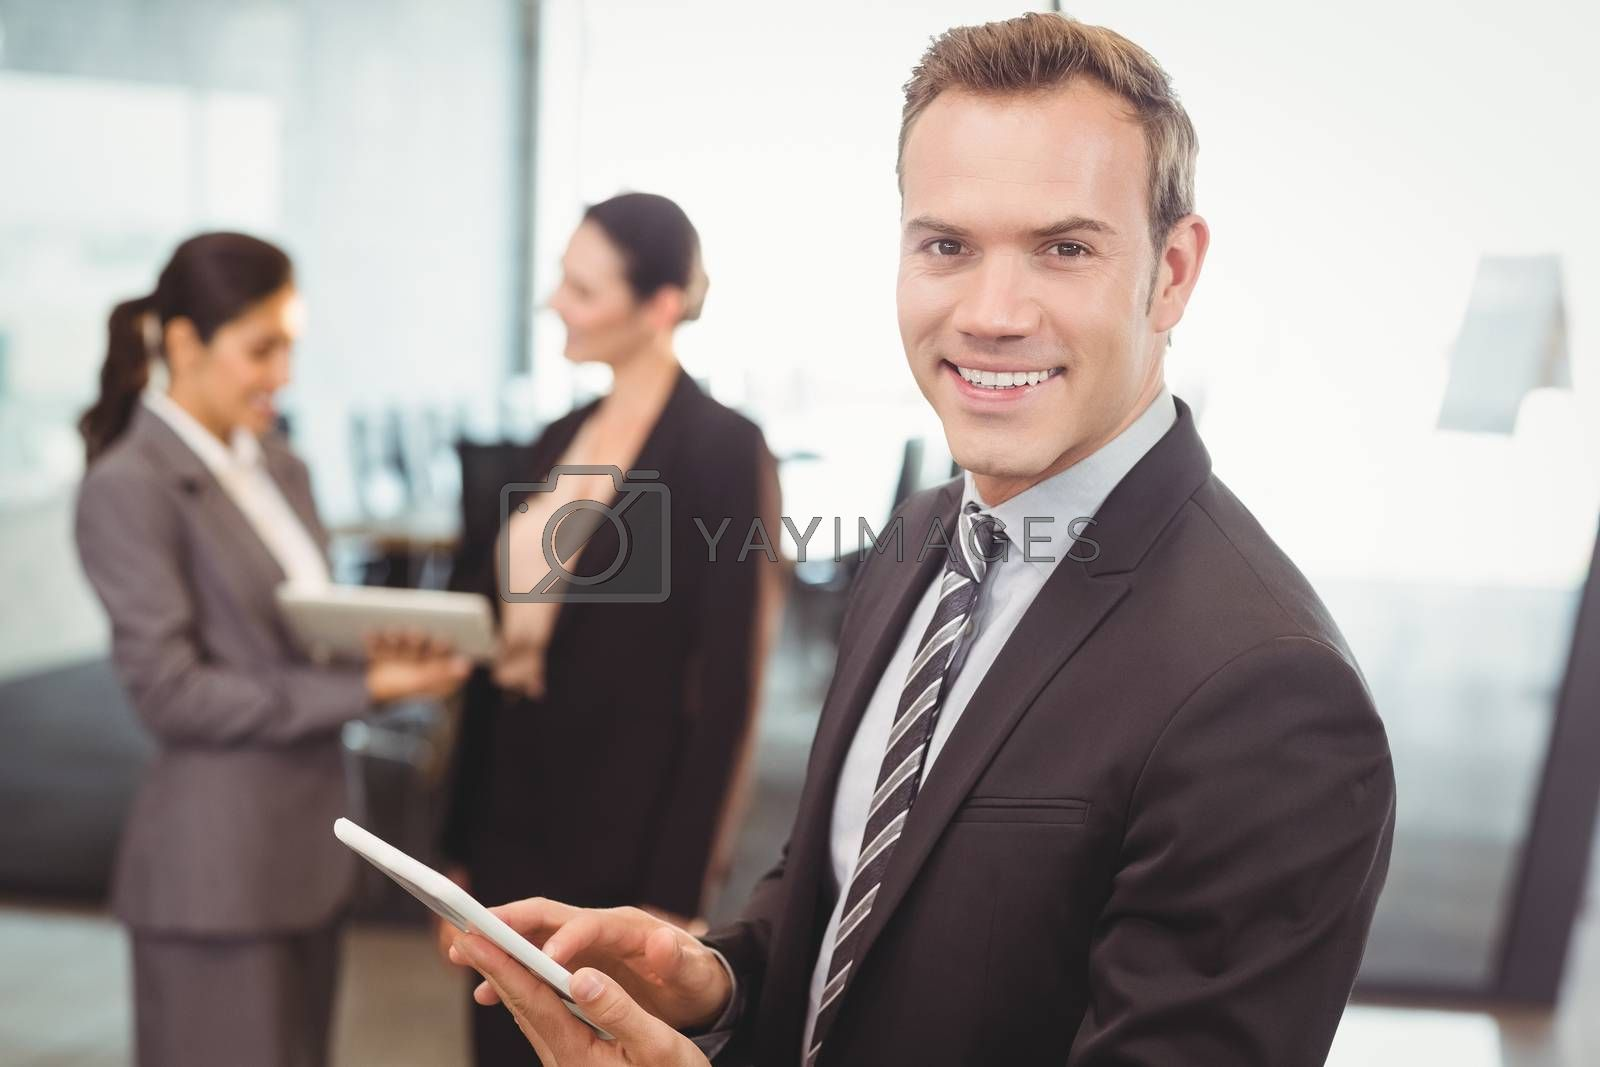 Portrait of businessman using digital tablet in office